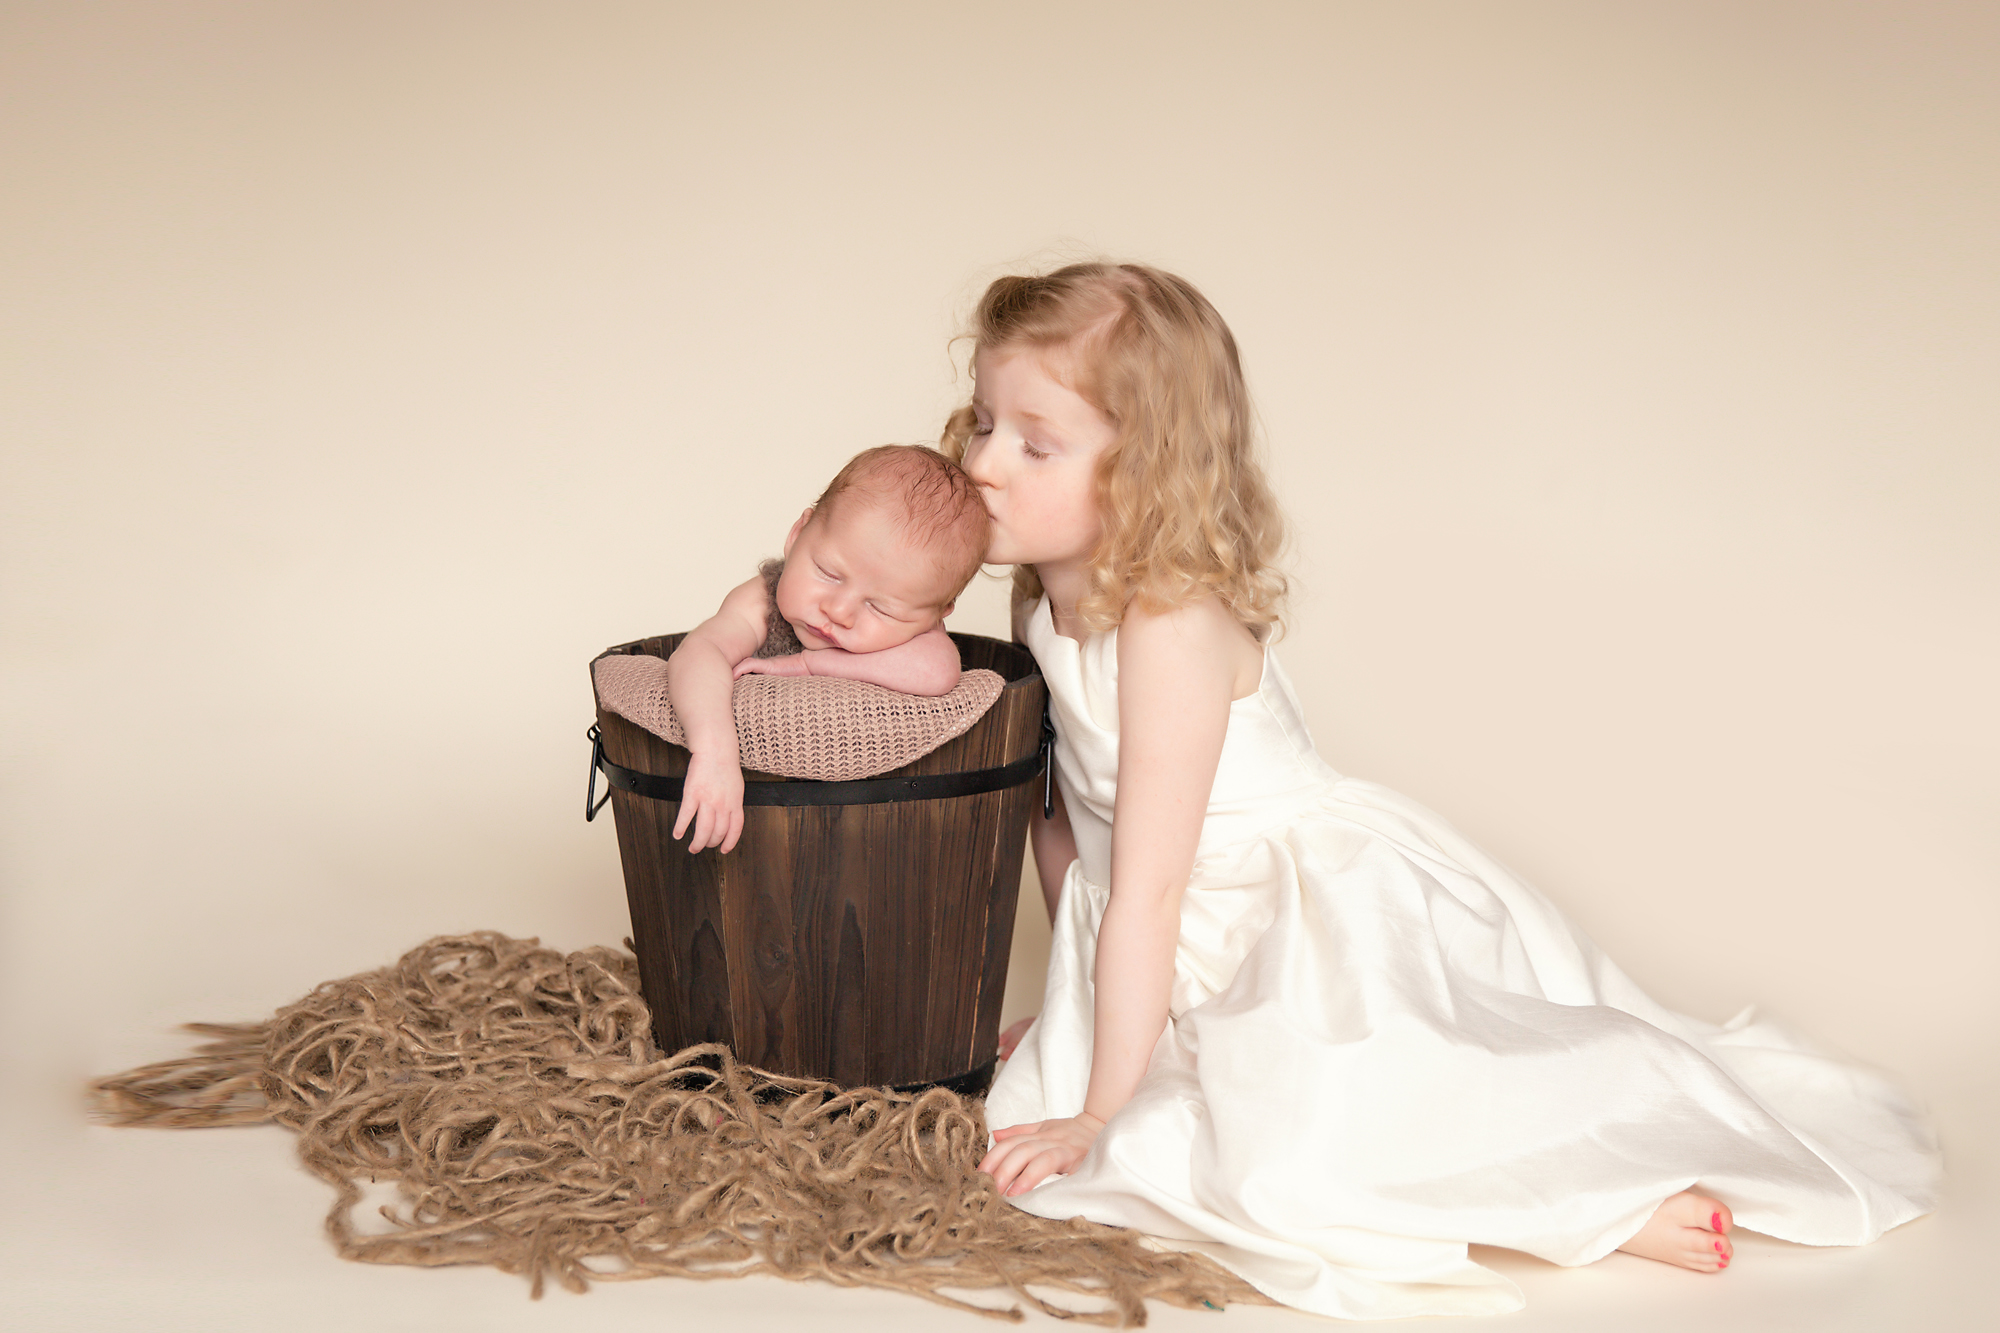 Big sister is kissing her little newborn baby brother in a bucket. Newborn photography. Calgary Newborn and Baby photographer - Milashka Photography.